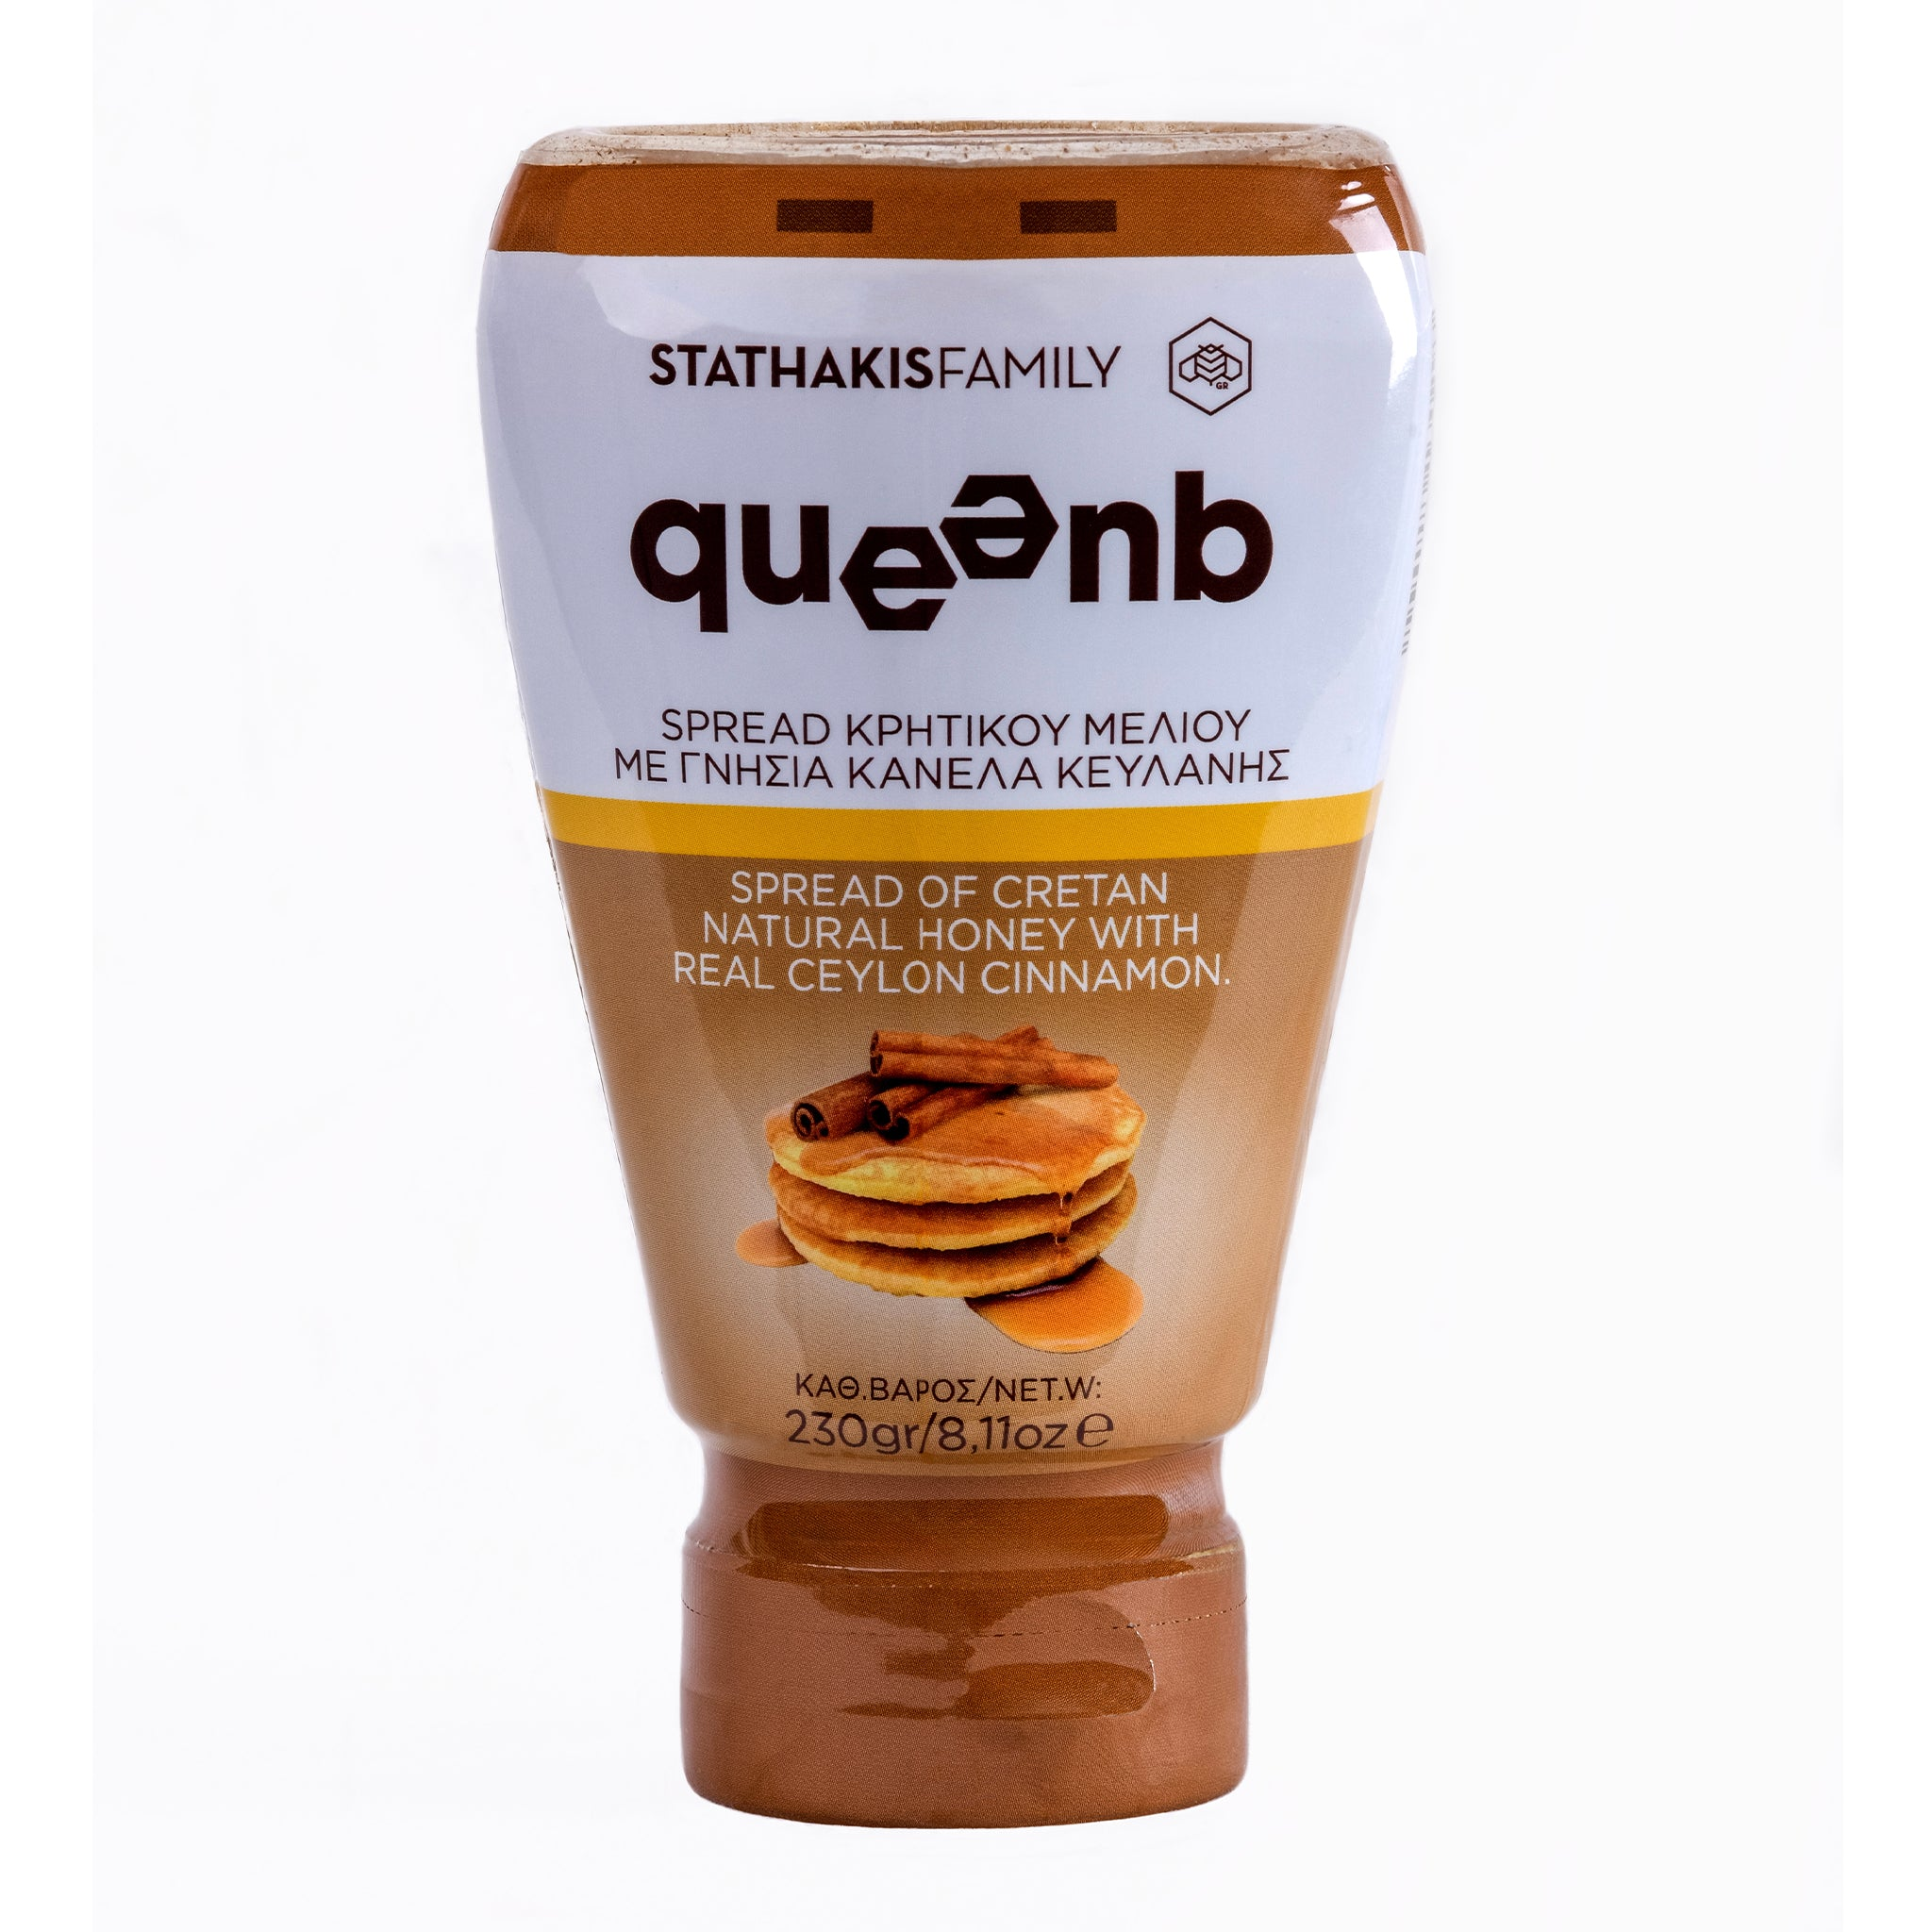 QUEENB Spread of Greek Cretan Natural Honey with Real Ceylon Cinnamon, 230gr